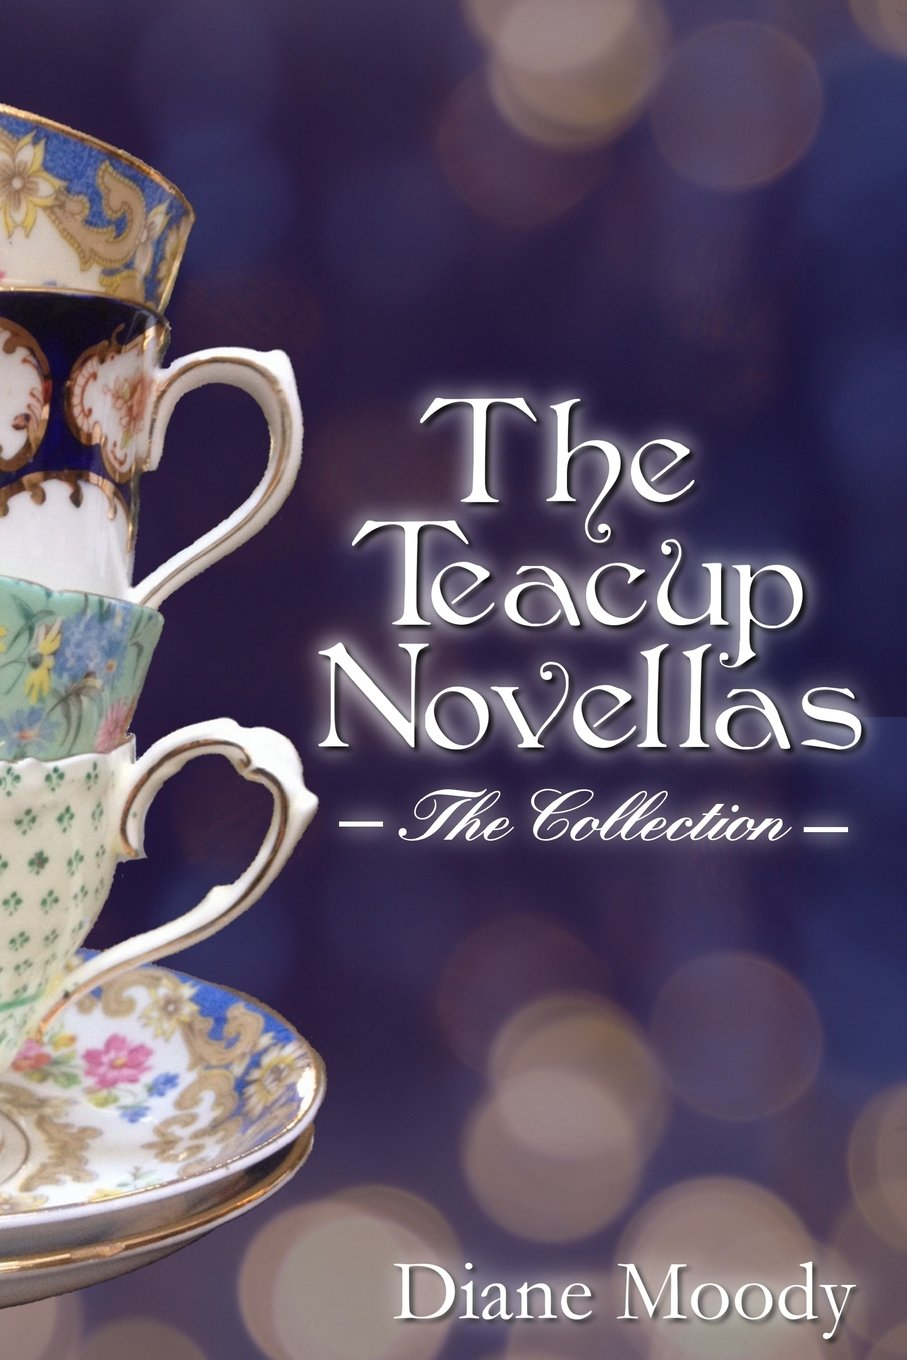 Teacups Novellas Collection Diane Moody